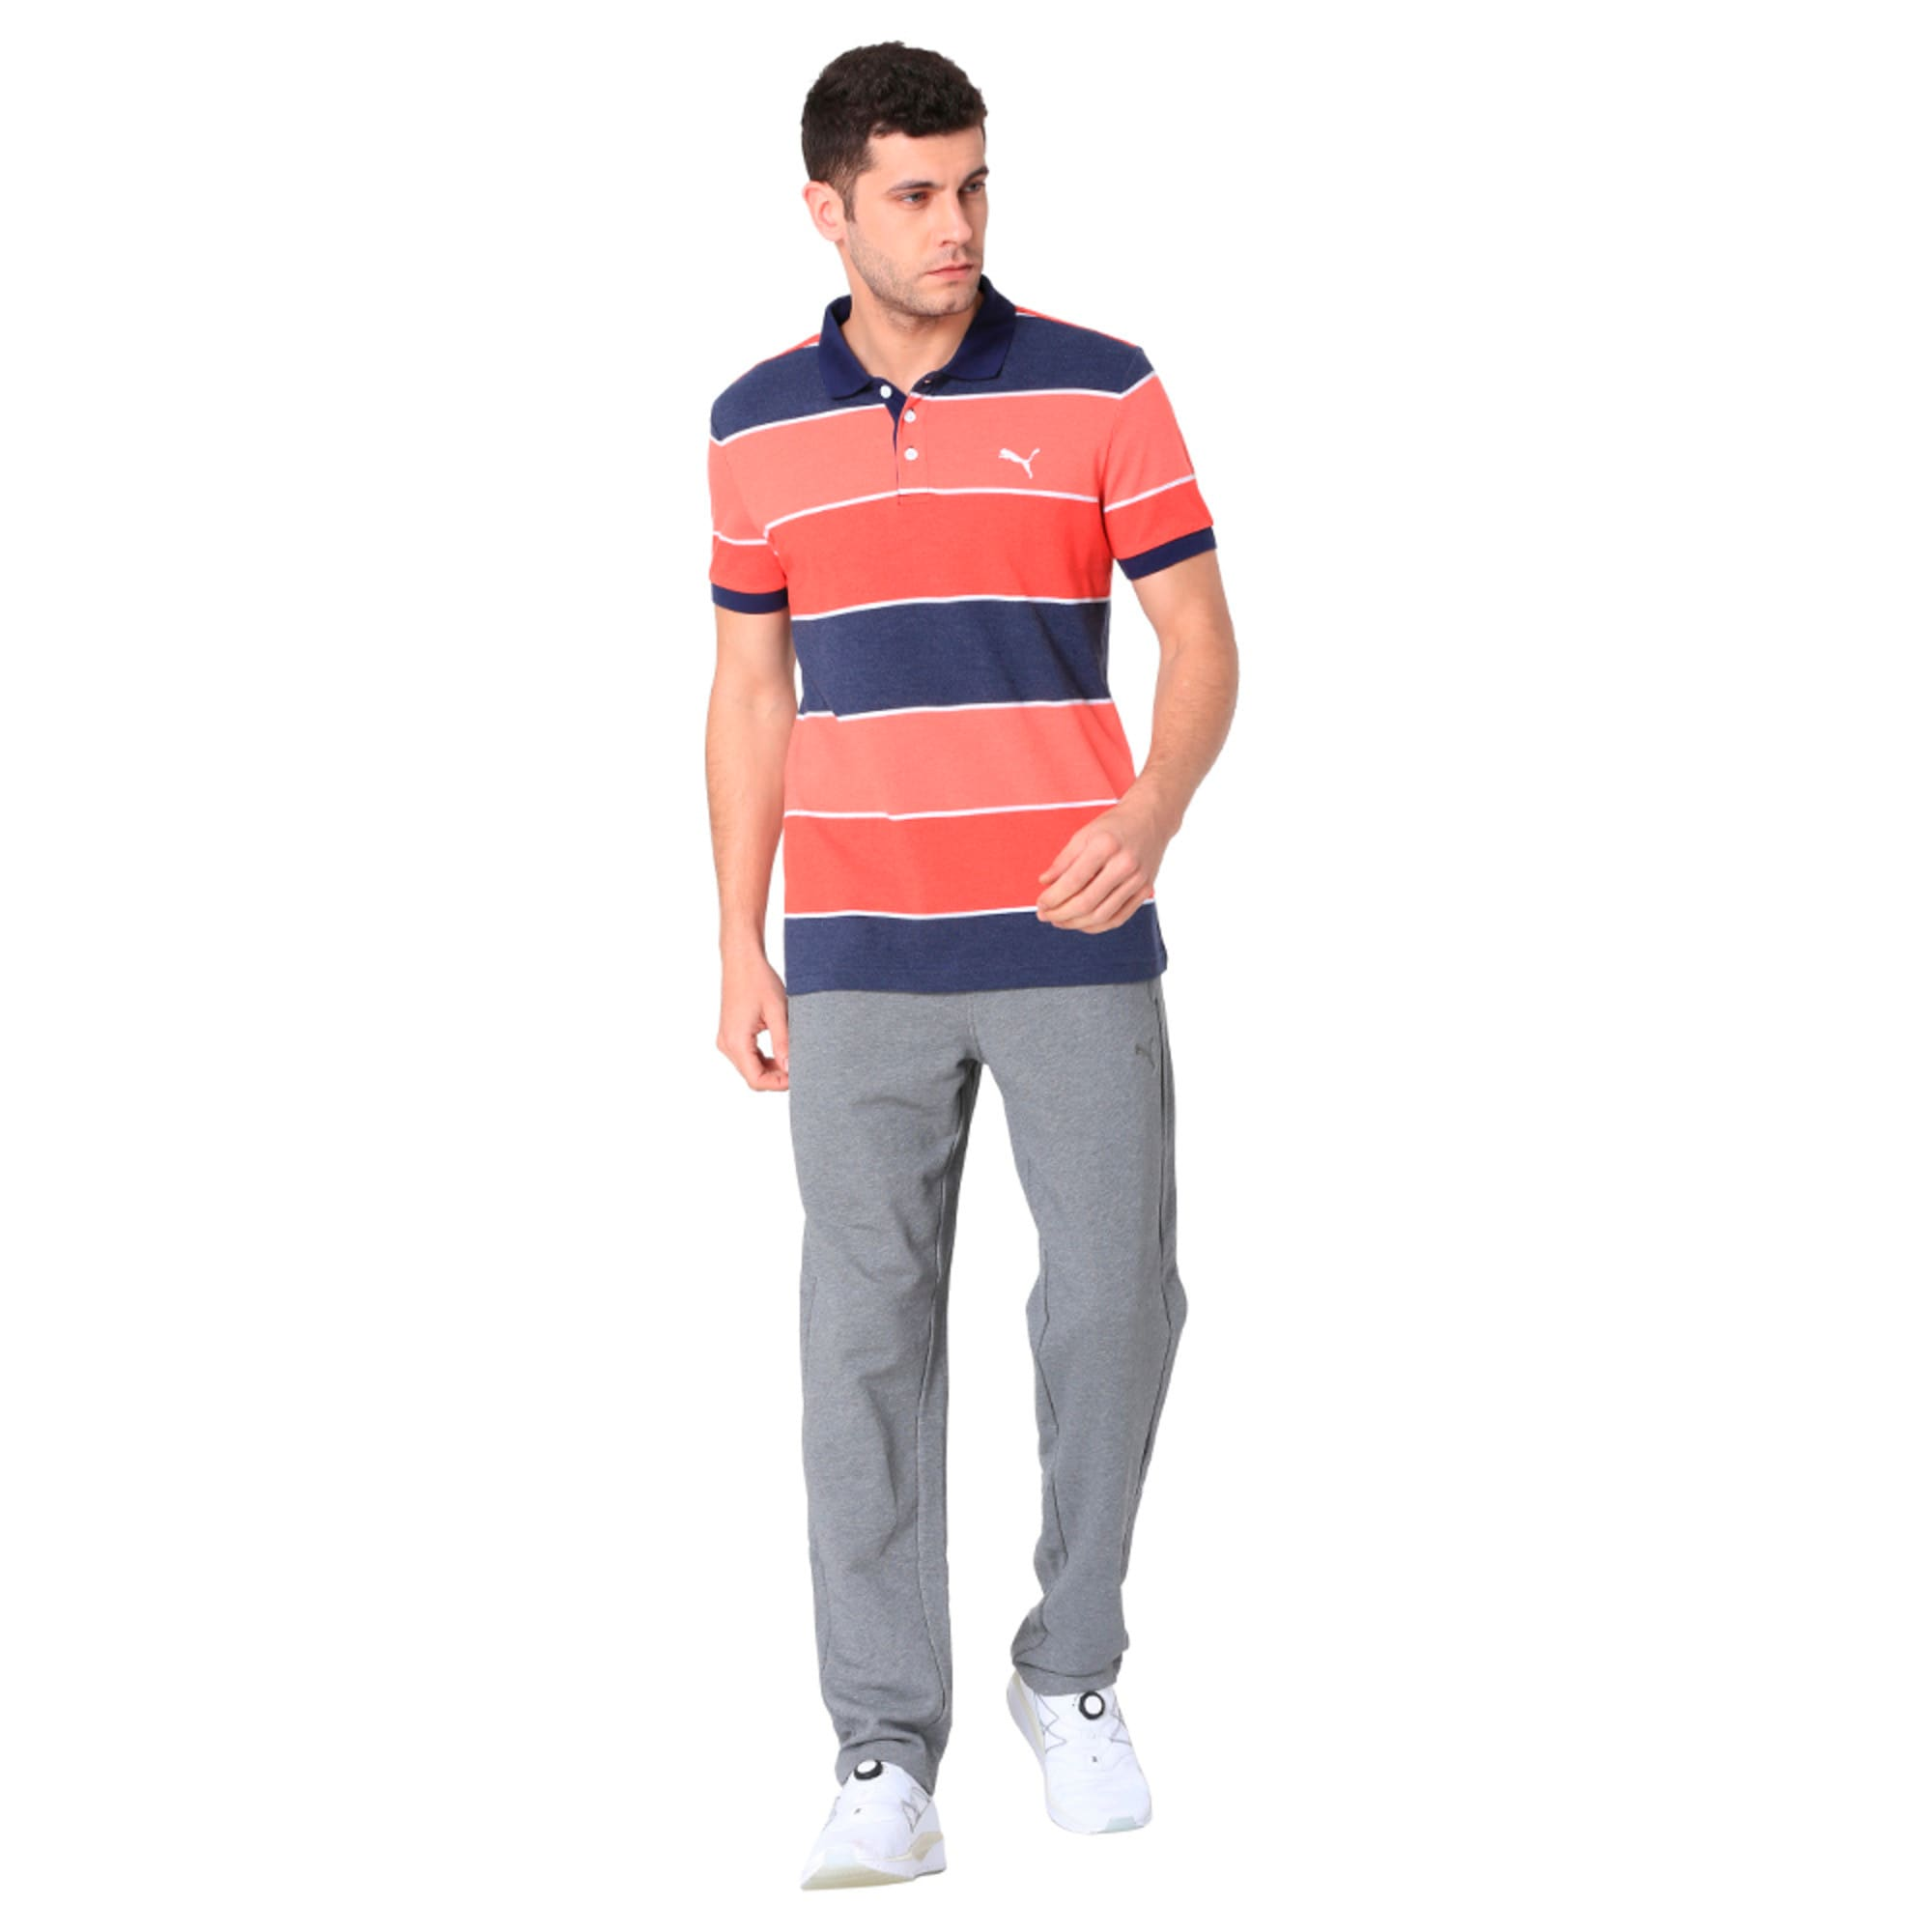 Thumbnail 5 of COLOR BLOCKED POLO M, Flame Scarlet Heather, medium-IND